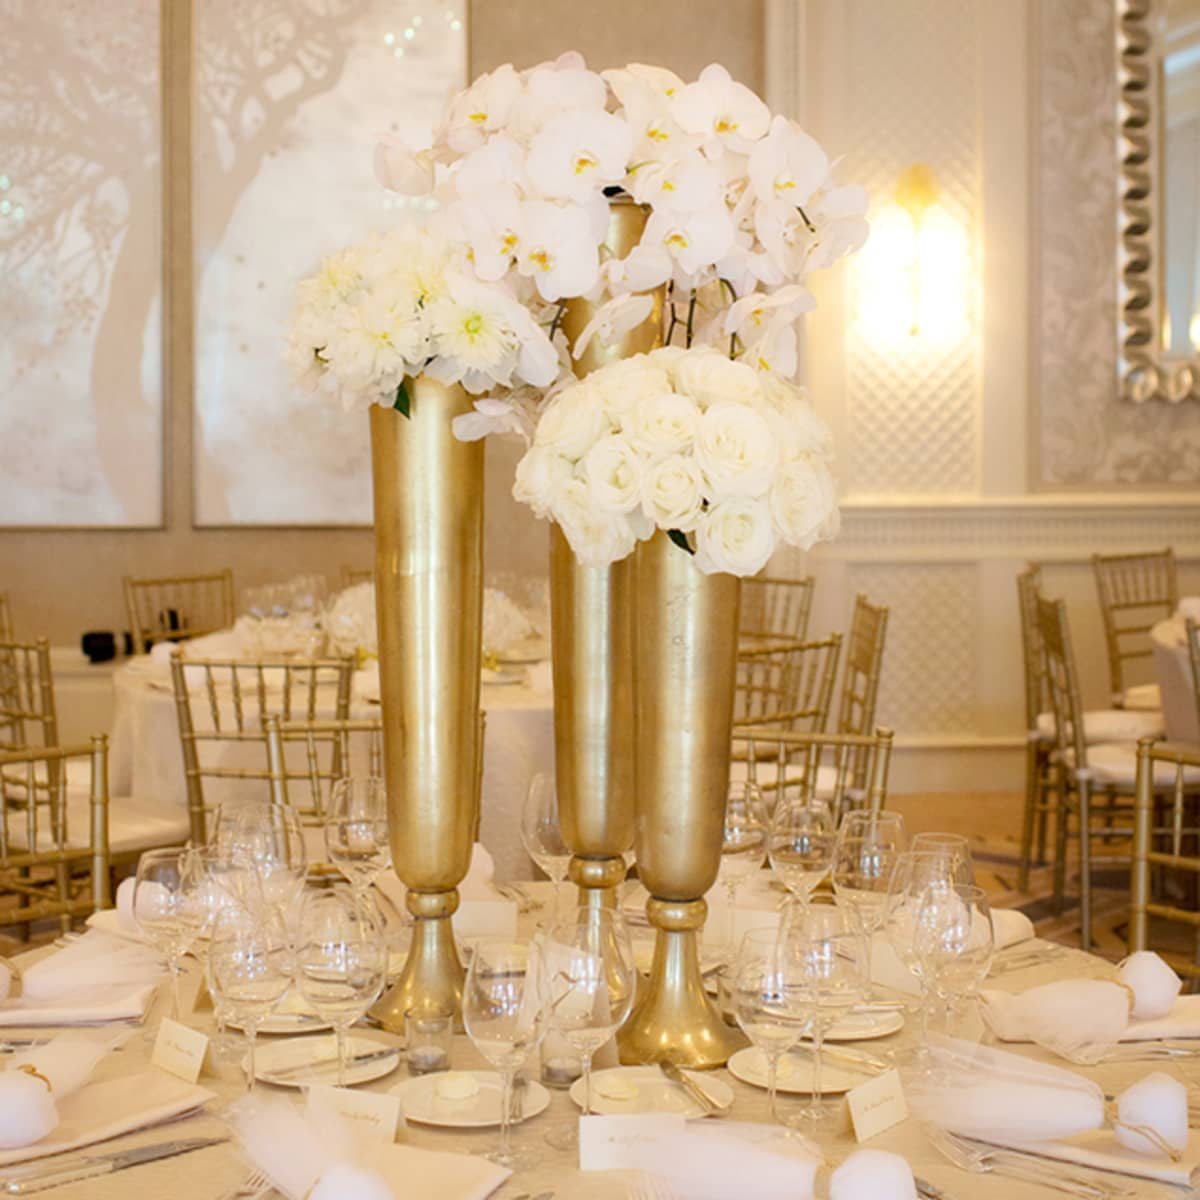 Gold Vases With Lush White Blooms Decorate Each Reception Table